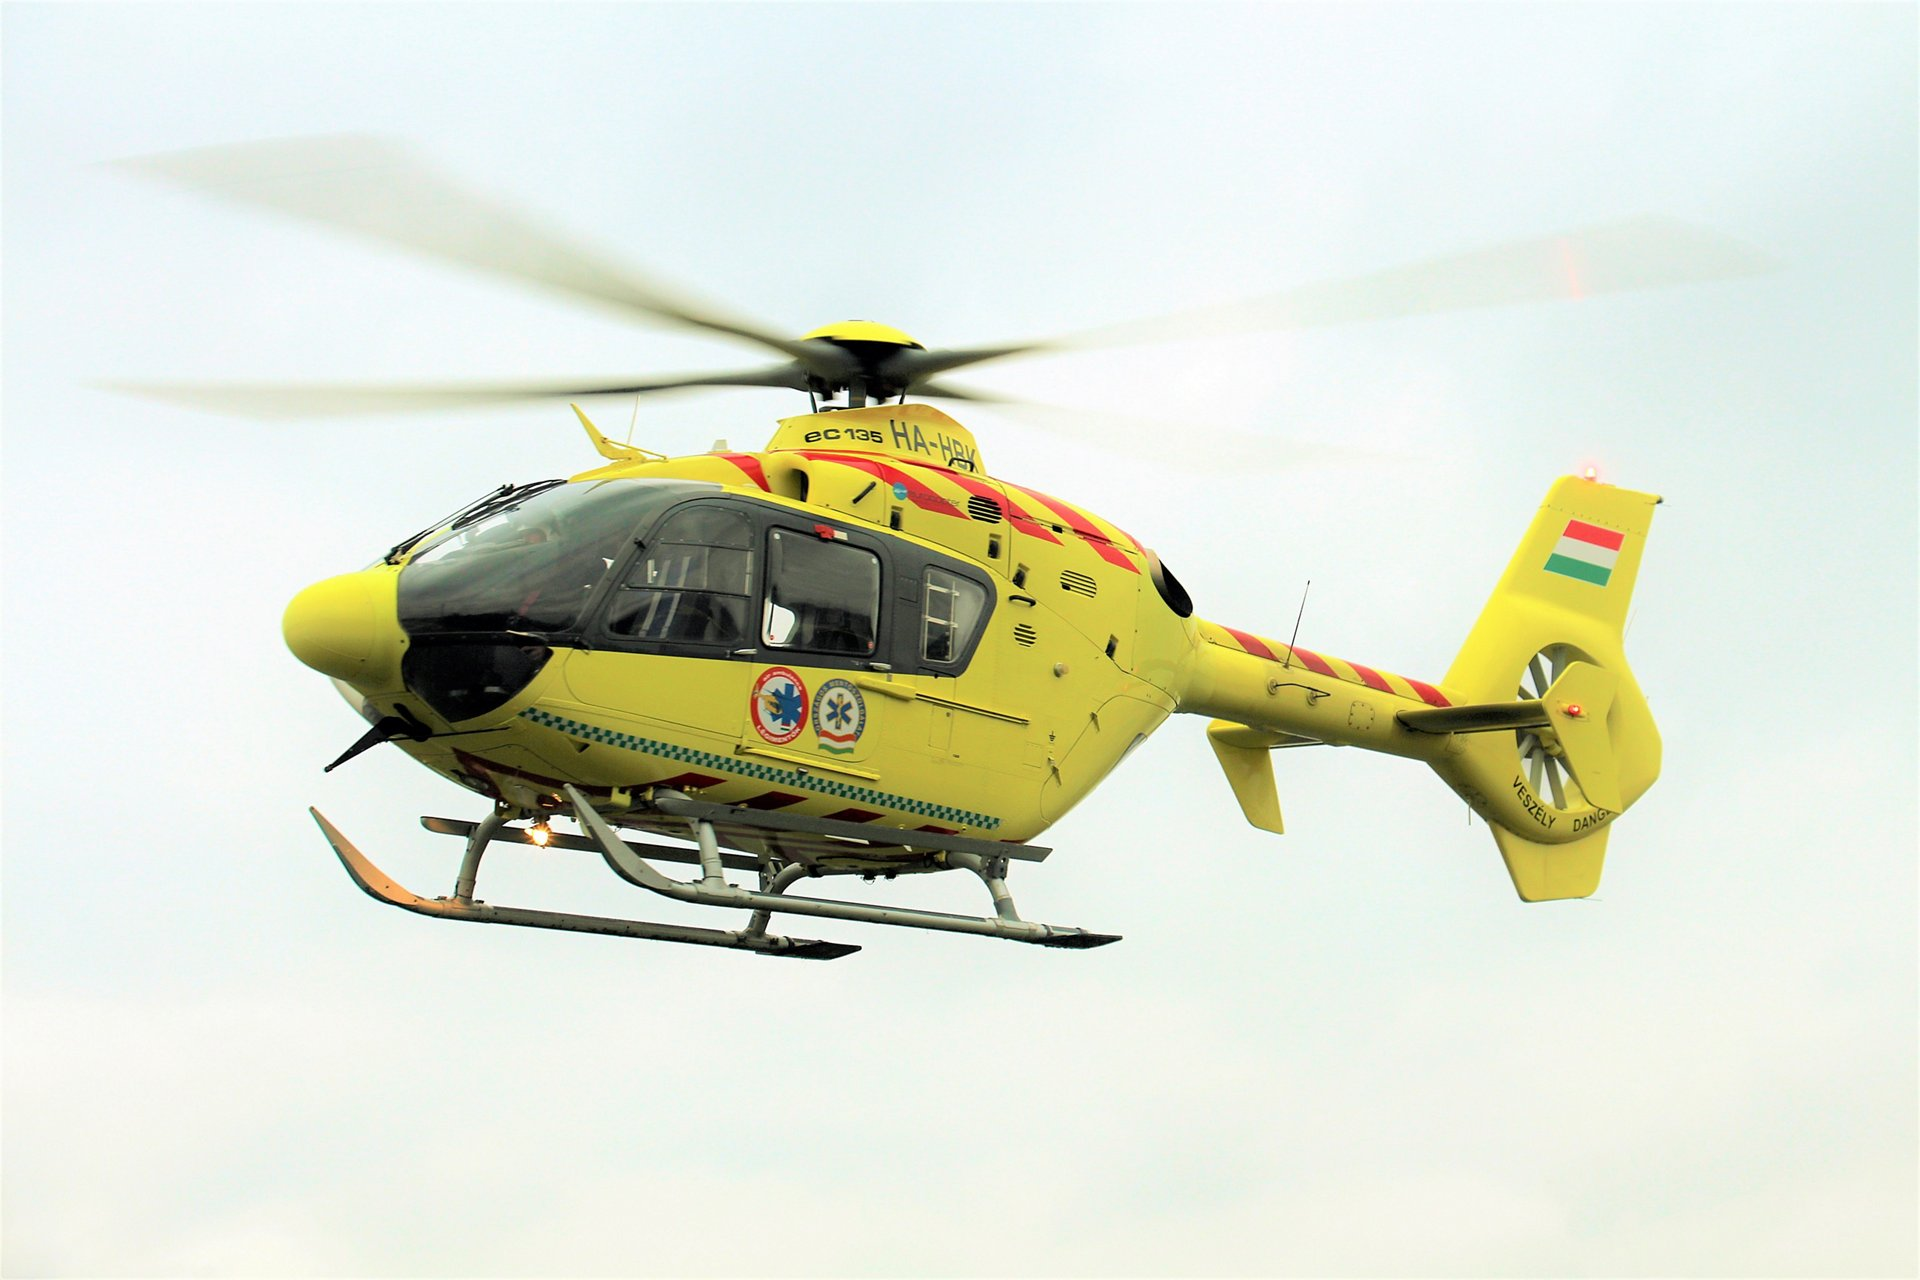 The operator, Hungarian Air Ambulance Nonprofit Ltd, has signed a three-year contract to deploy Airbus Helicopters' Connected Services for its new fleet of nine second-hand H135 helicopters, thereby digitising its entire chain of maintenance and flight operations. It is the first operator to purchase the complete end-to-end solution of connected services from Airbus, encompassing the digitisation, collection, storage, and analysis of data.